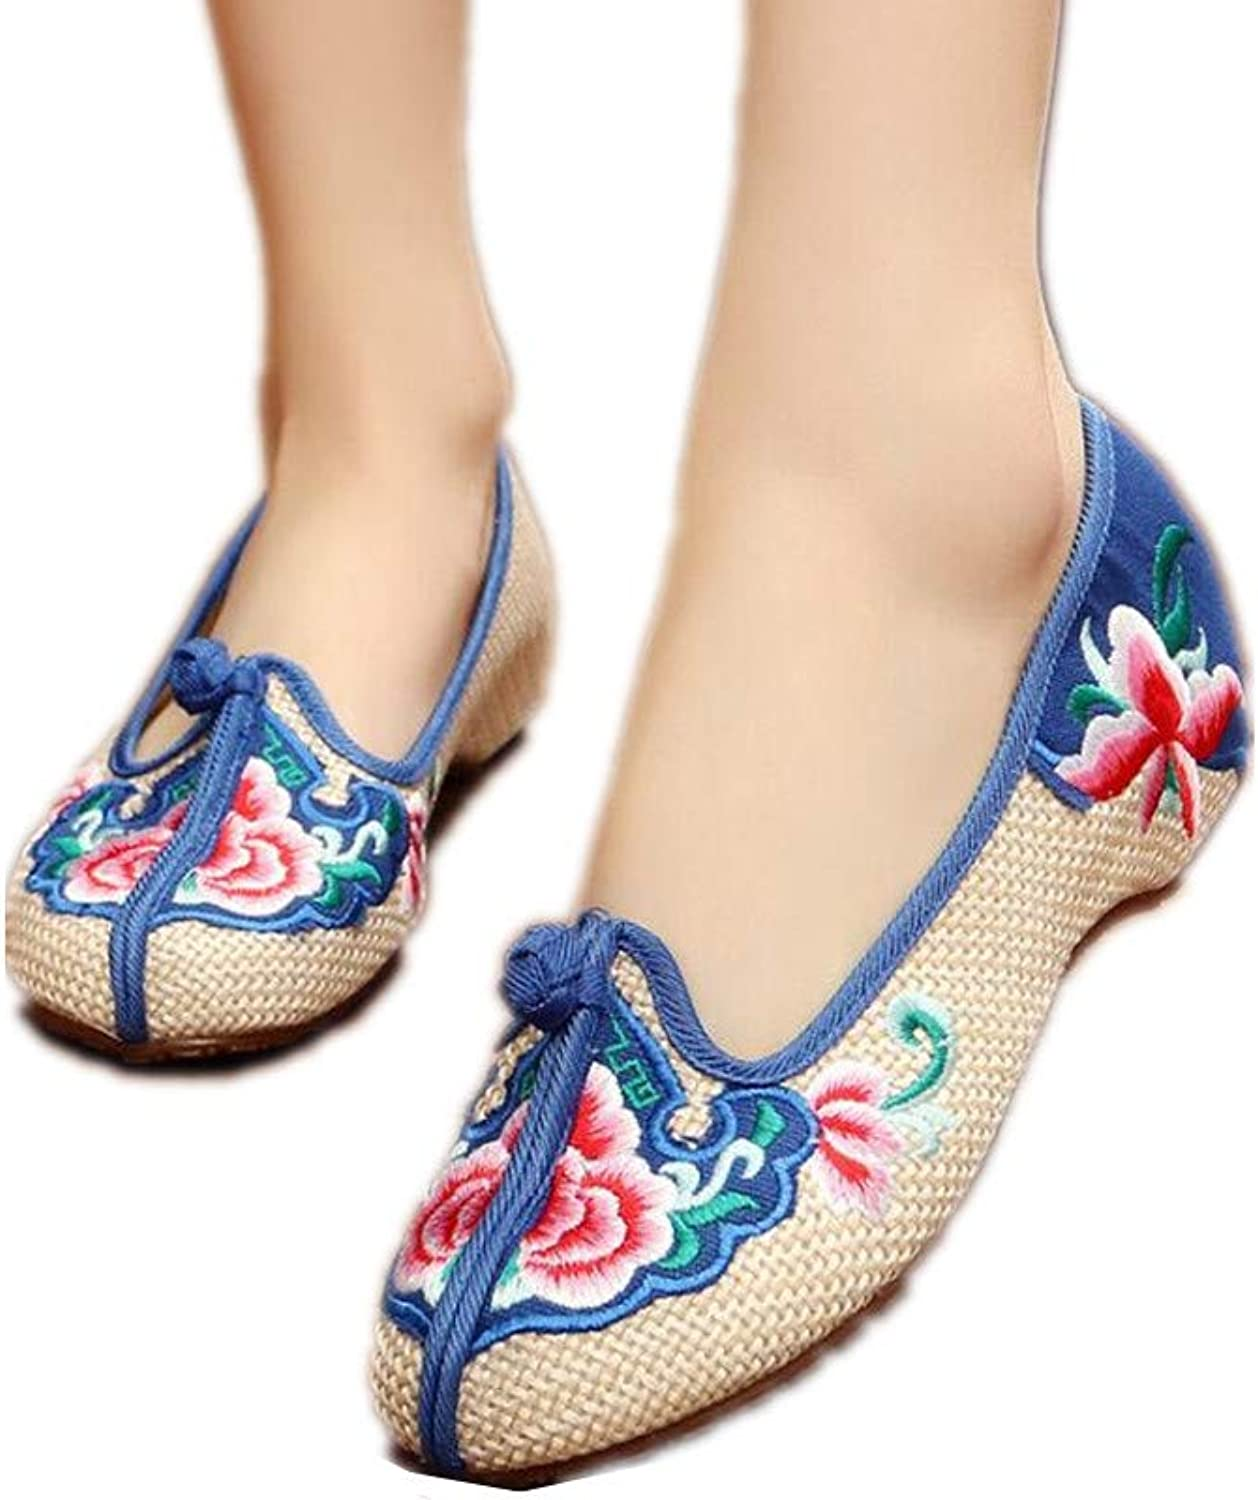 F1rst Rate Embroidered shoes- Flats shoes Slipper Comfortable Loafer Embroidery Slip on